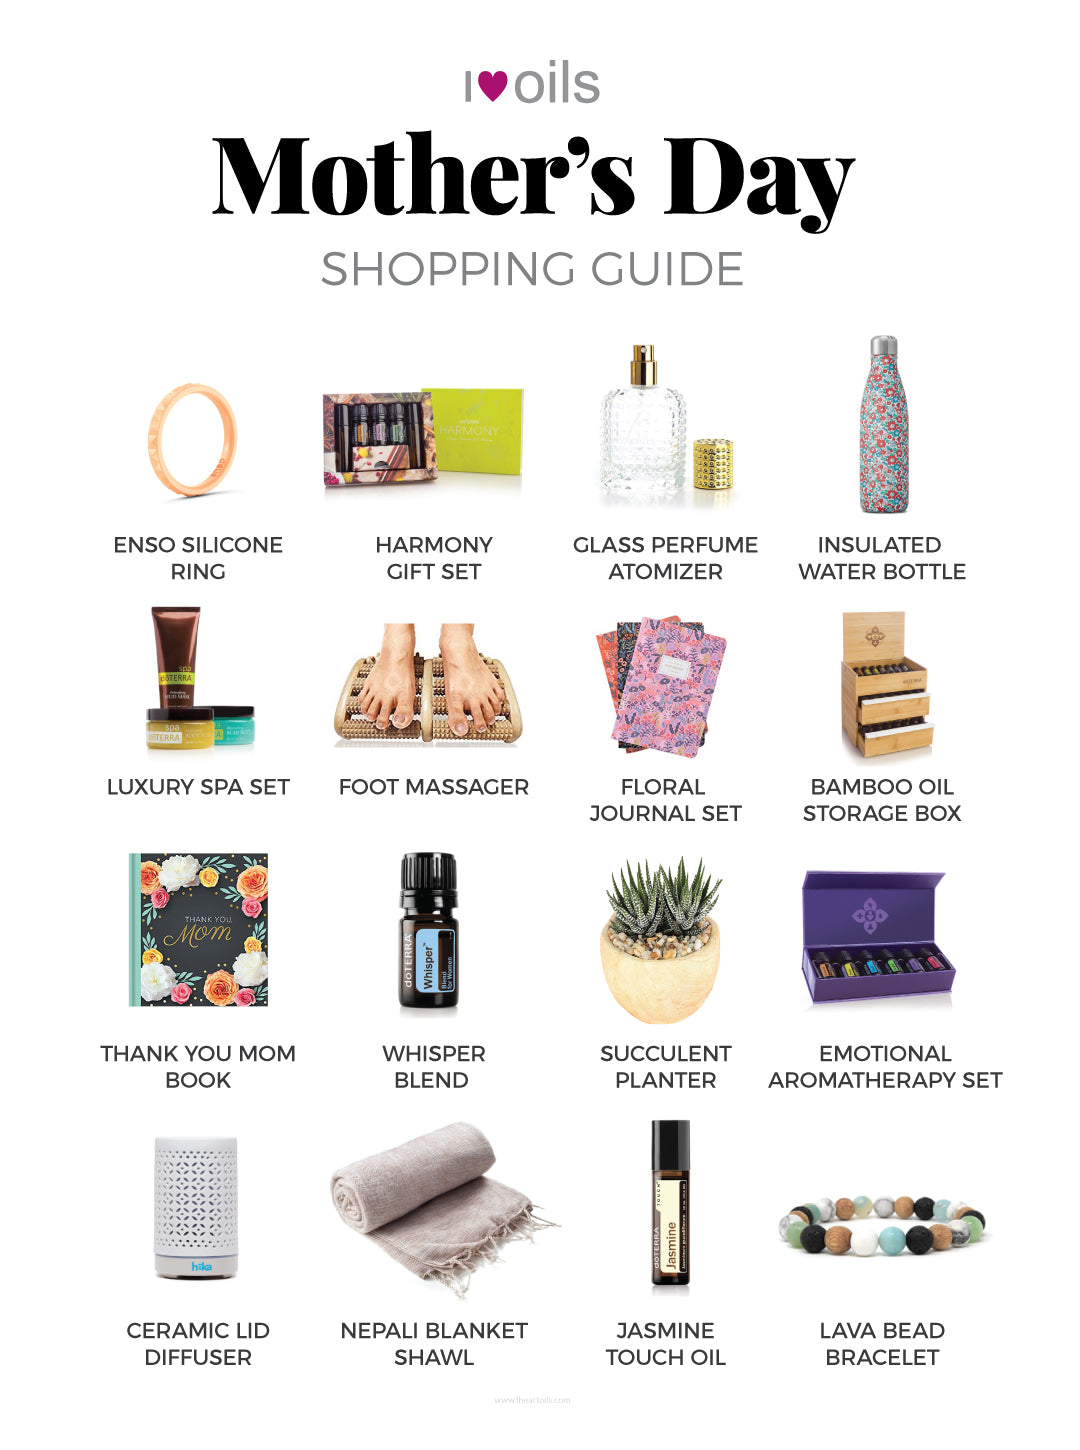 I Heart Oils Mother's Day Gift Guide